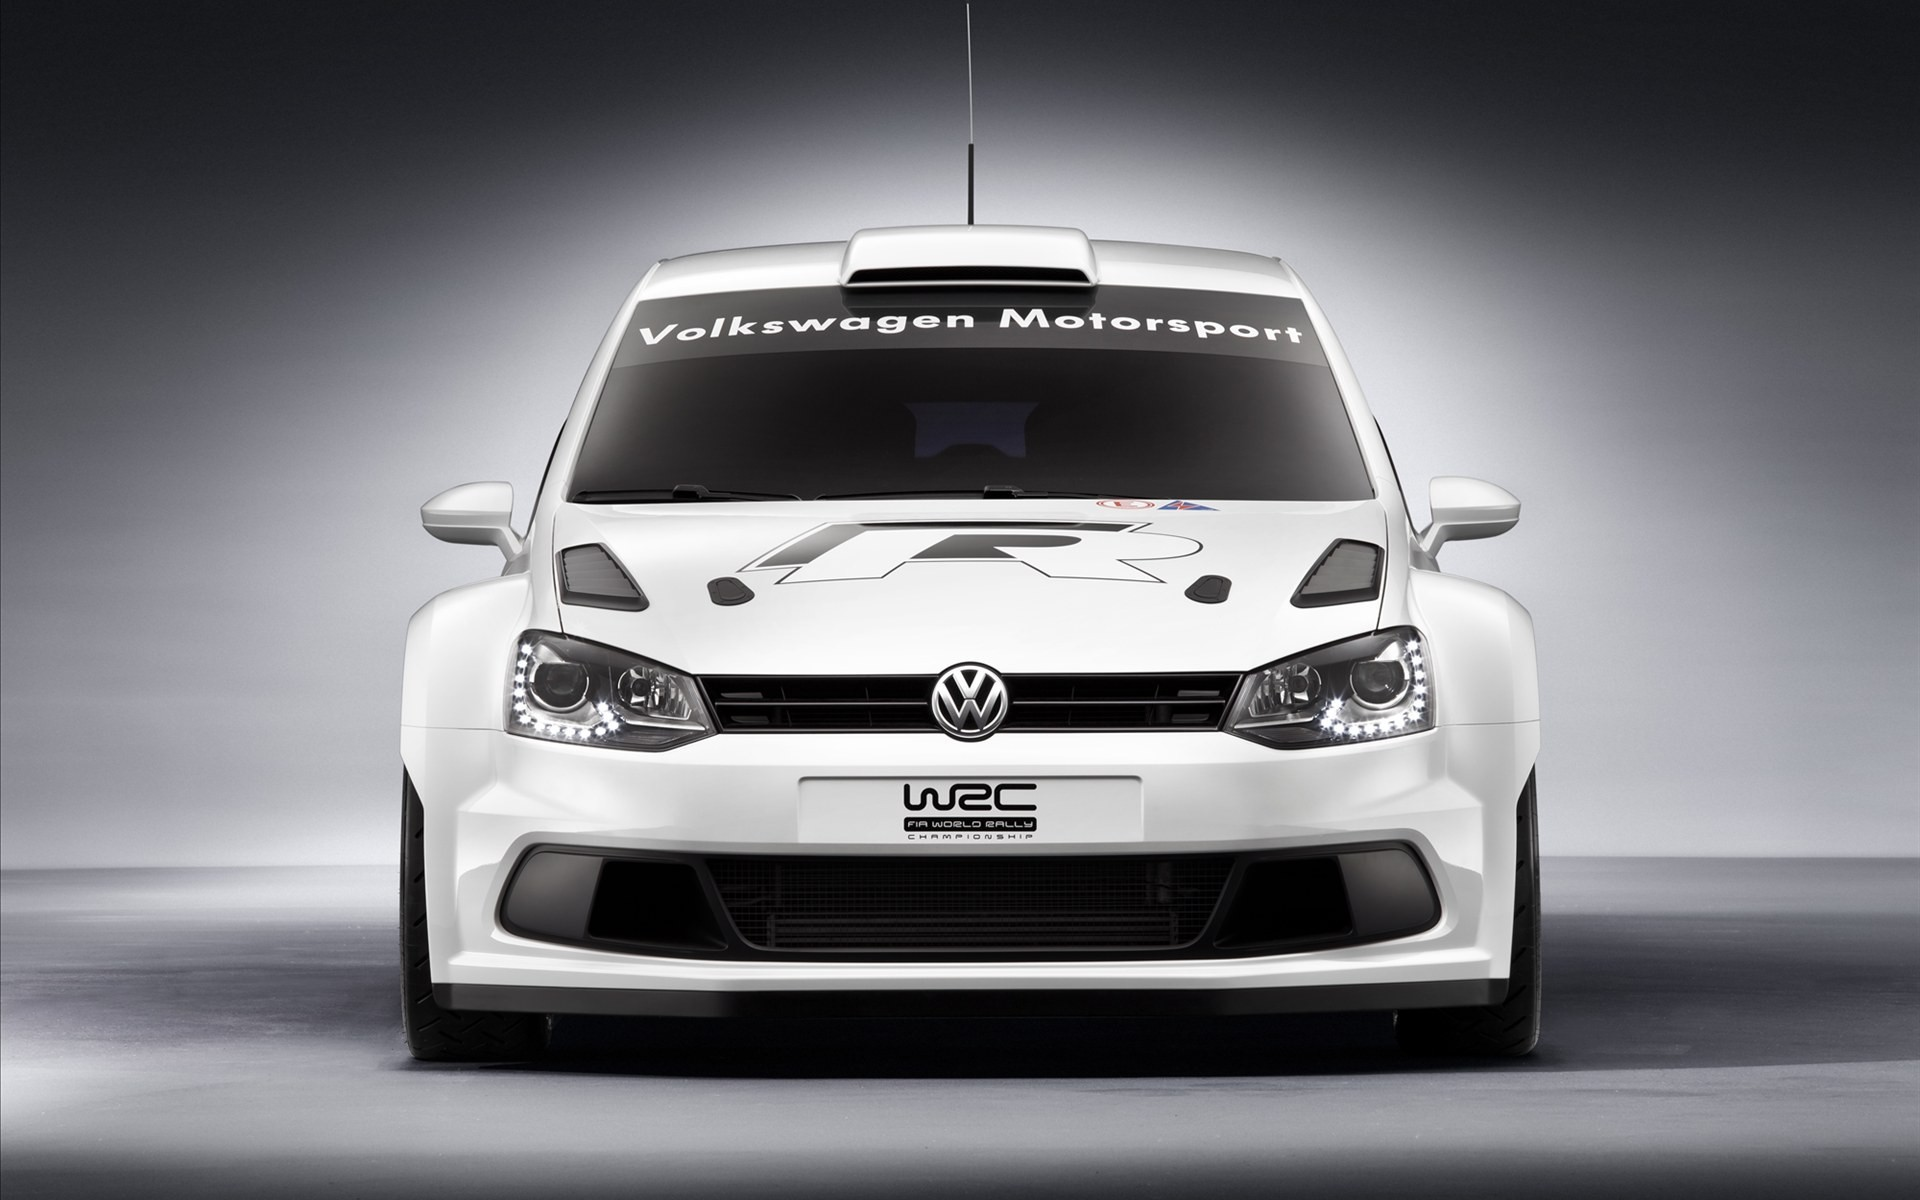 cars Volkswagen HD Wallpaper